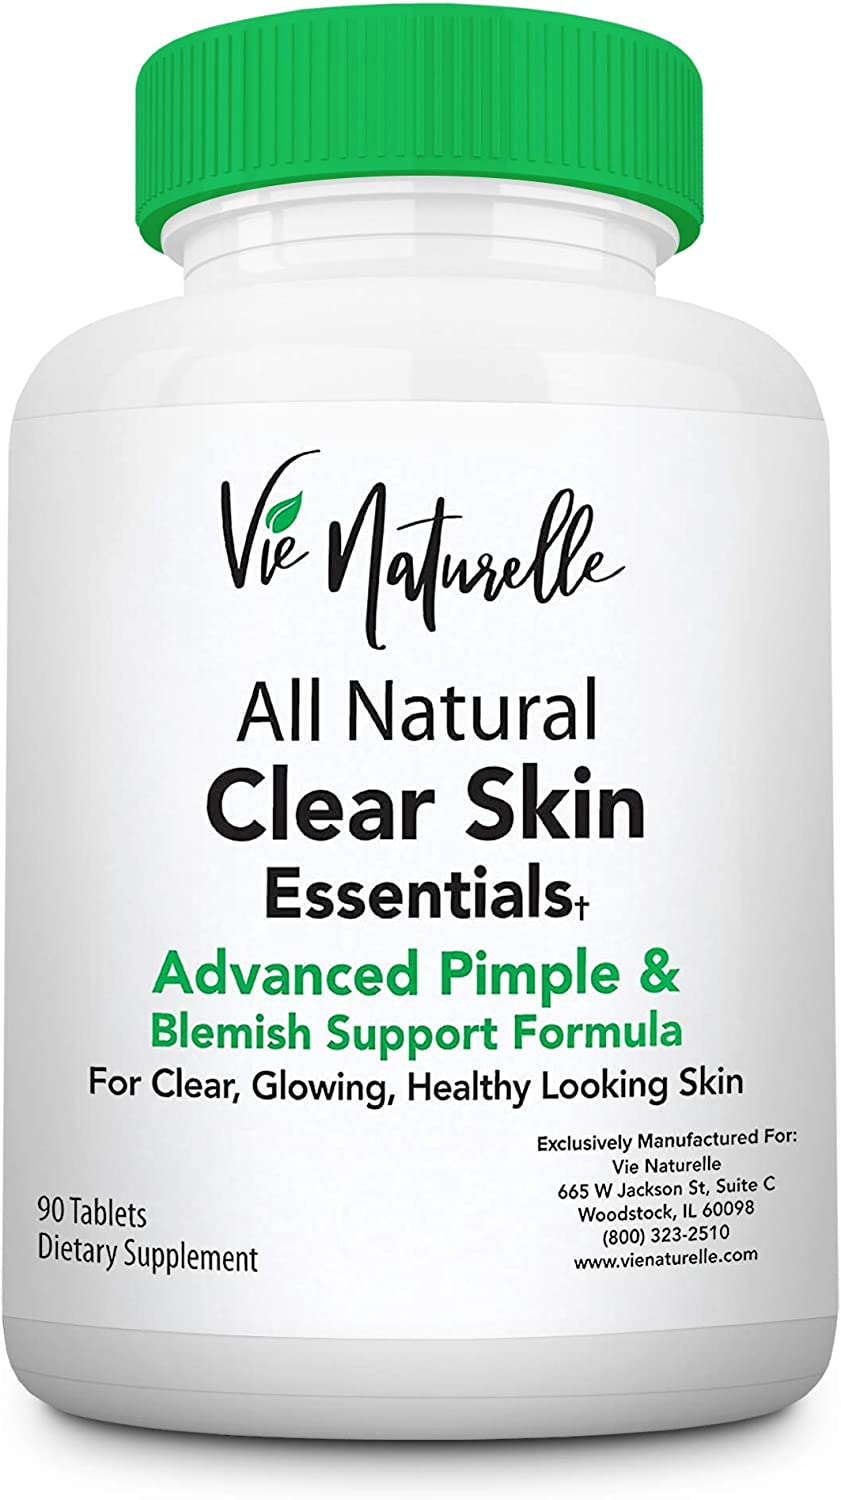 amazon.com: acne vitamins & acne supplements for acne treatment - acne pills  & acne vitamin supplements for cystic acne treatment - face, back, body &  hormonal acne treatment for teens, women &  amazon.com